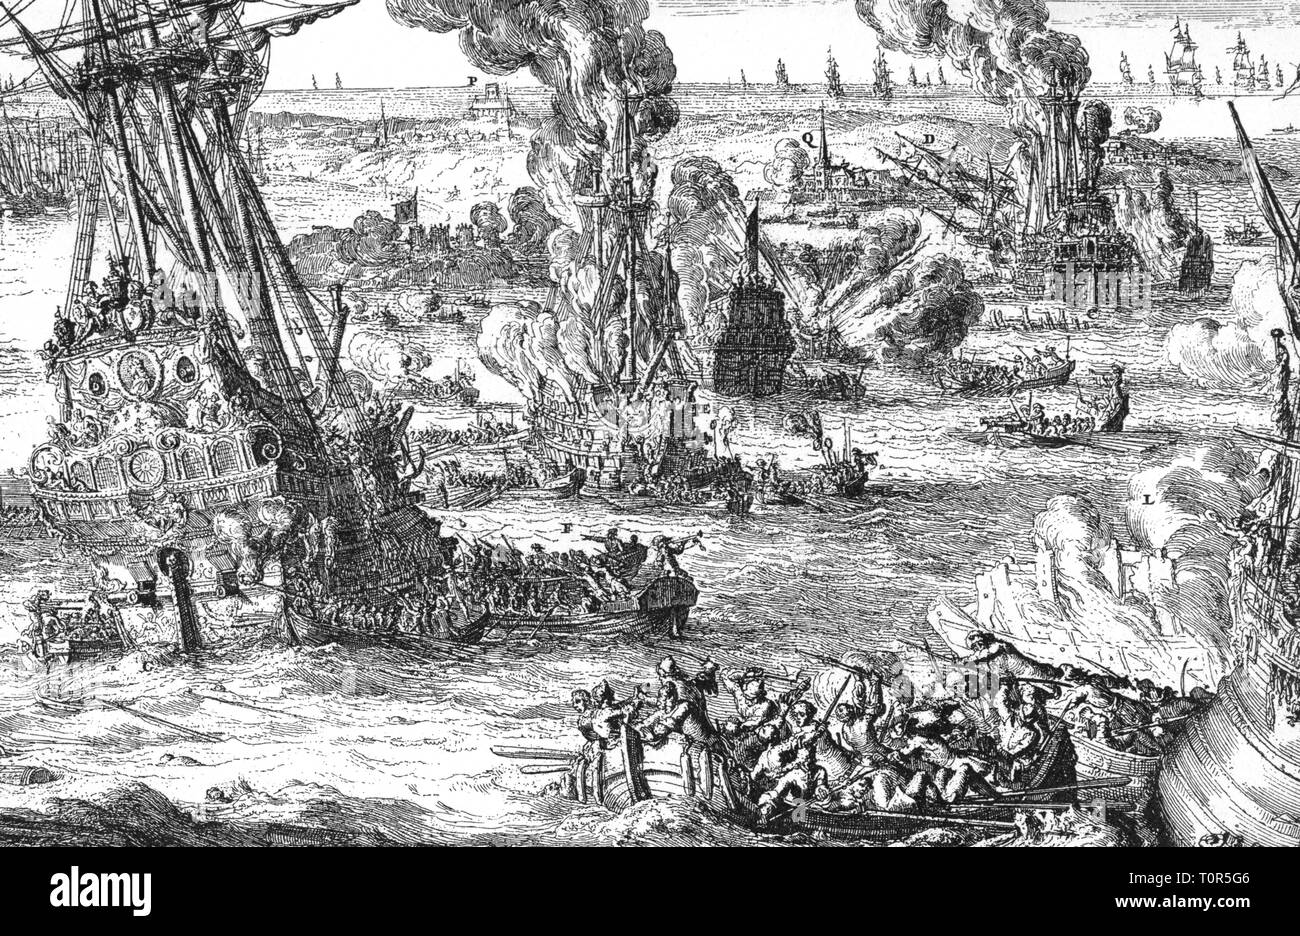 Nine Years' War 1688 - 1697, naval battles of Barfleur and La Hogue, 29.5. - 4.6.1692, destruction the French fleet, contemporary copper engraving by Romeyn de Hooghe, detail, War of the Palatinate Succession, War of the League of Augsburg, War of the Great Alliance, France, United Netherlands, England, navy, naval warfare, ship, ships, warship, warship, fire, fire, blaze, burning, sea, English Channel, Wars of the Reunions, 17th century, people, historic, historical, battle, Additional-Rights-Clearance-Info-Not-Available - Stock Image